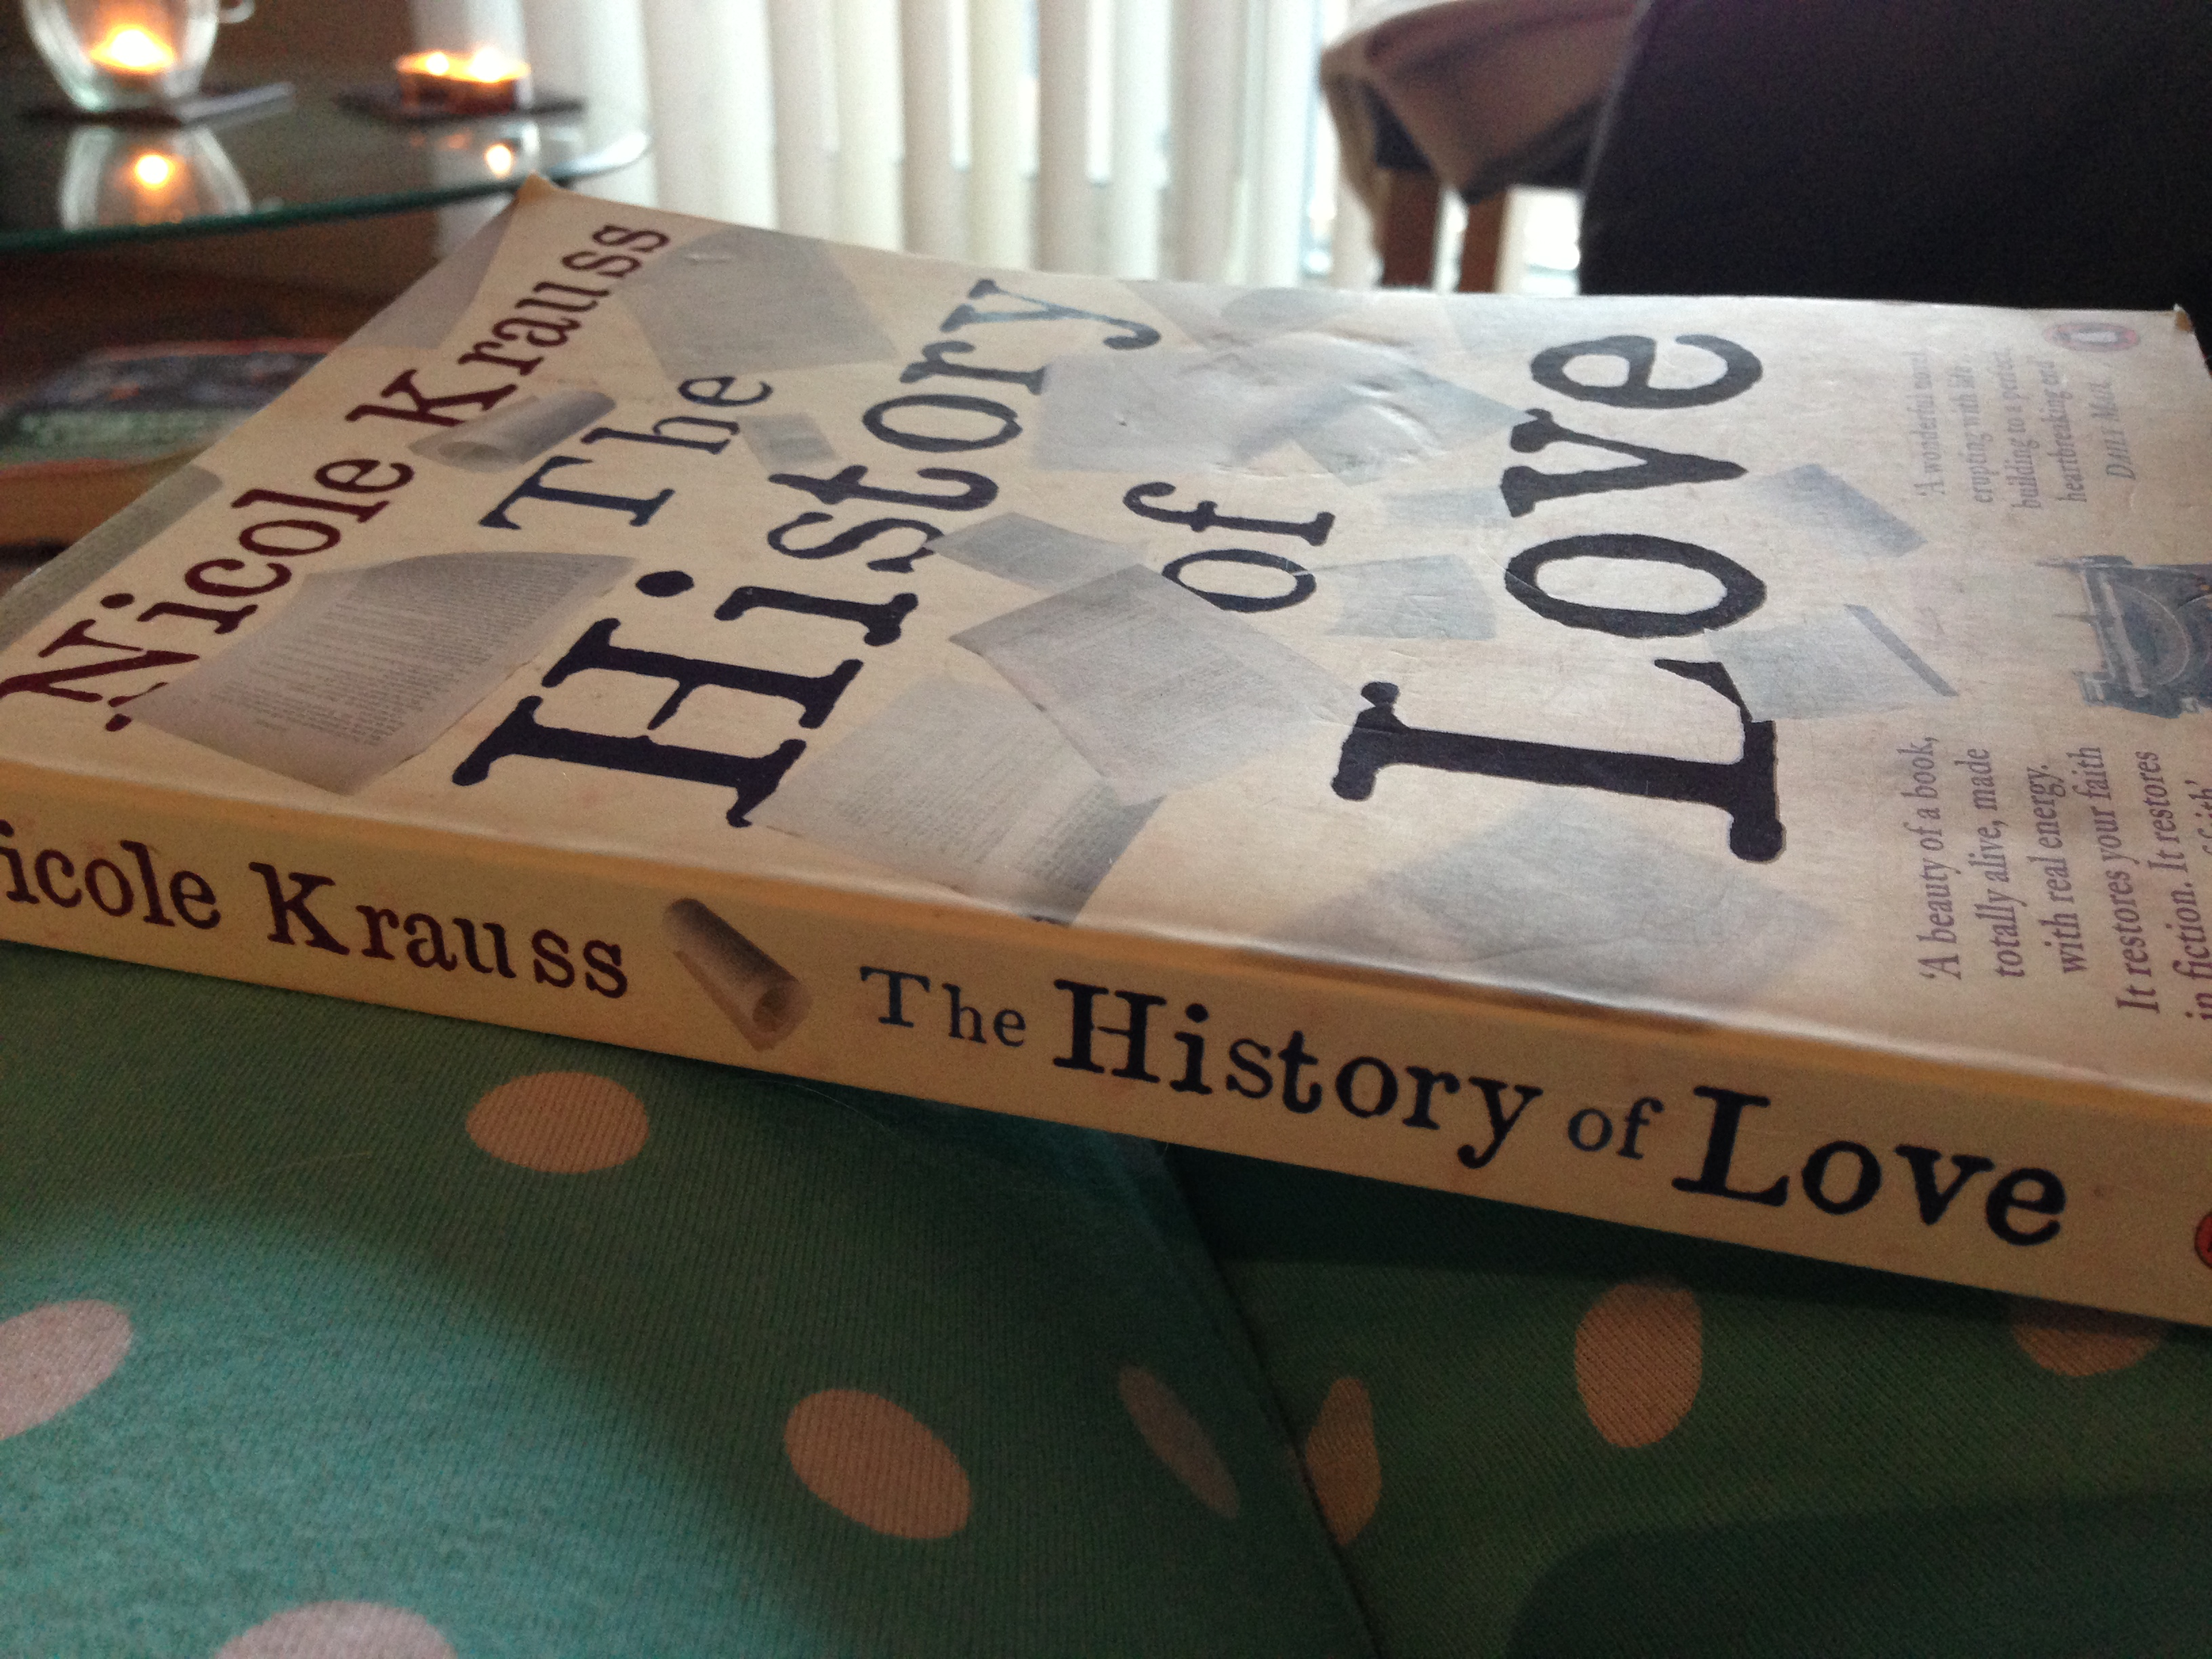 The History of Love book